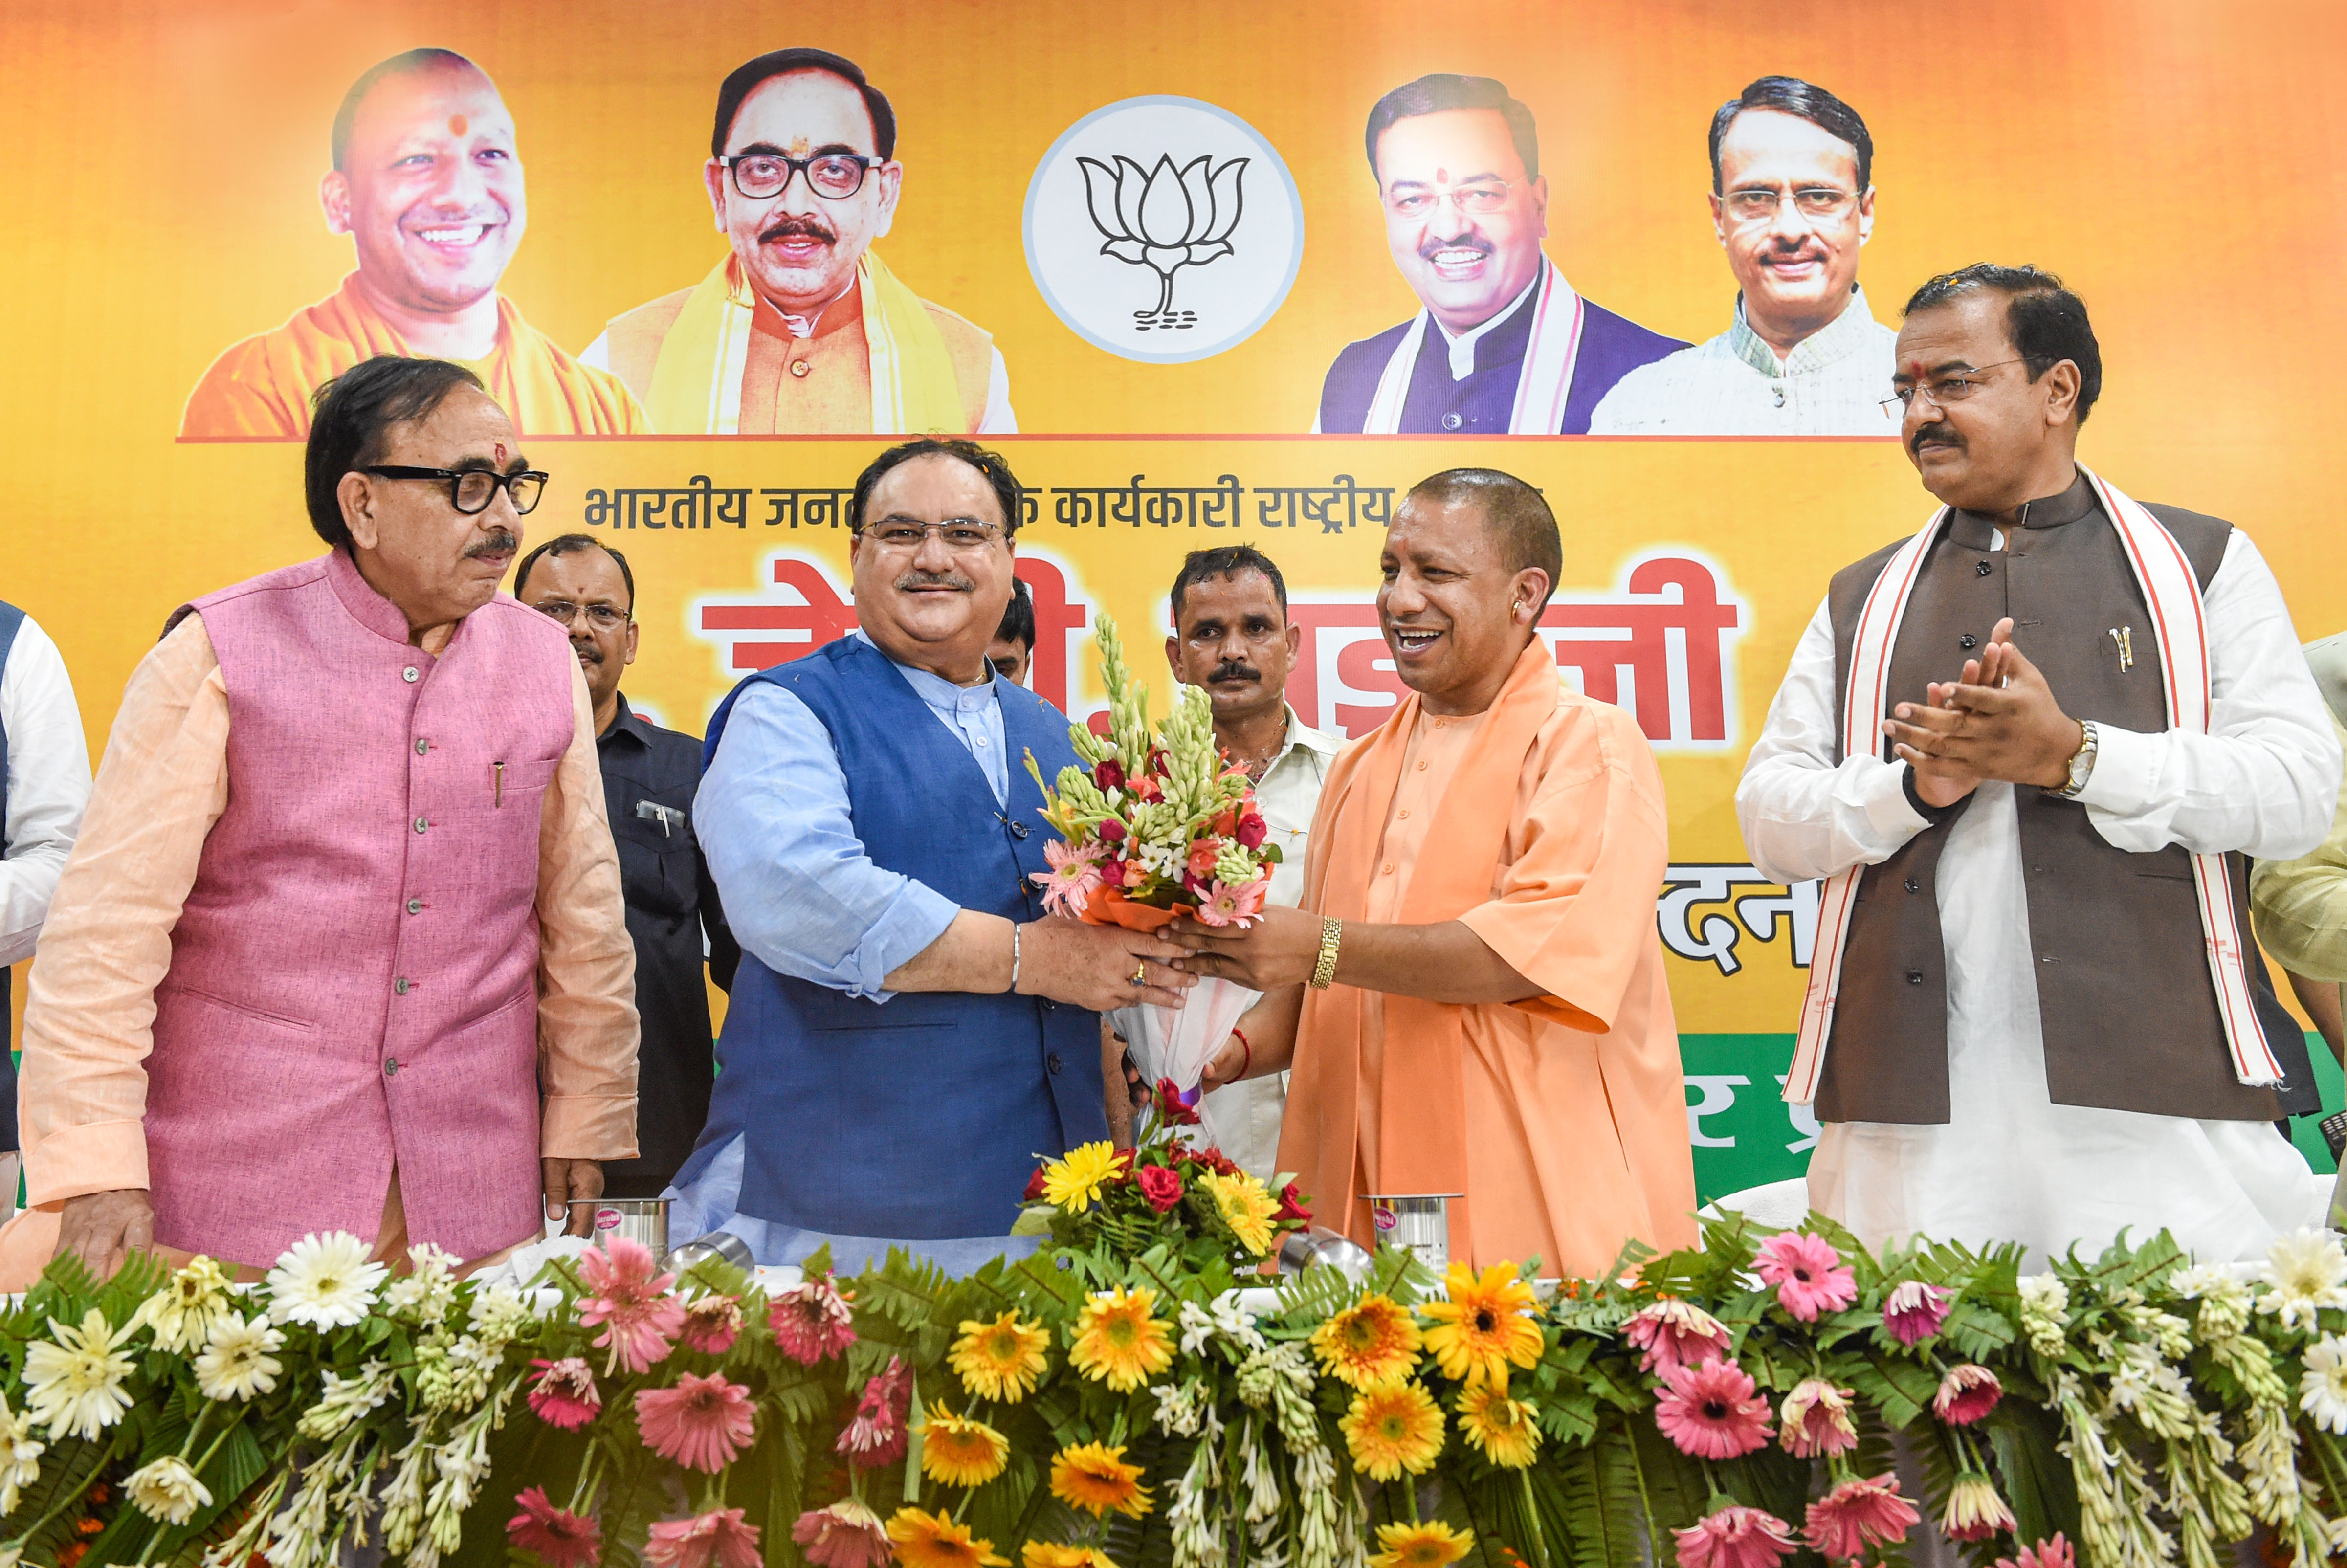 BJP National Working President JP Nadda receives a bouquet from Uttar Pradesh Chief Minister Yogi Adityanath, at BJP party office in Lucknow - PTI